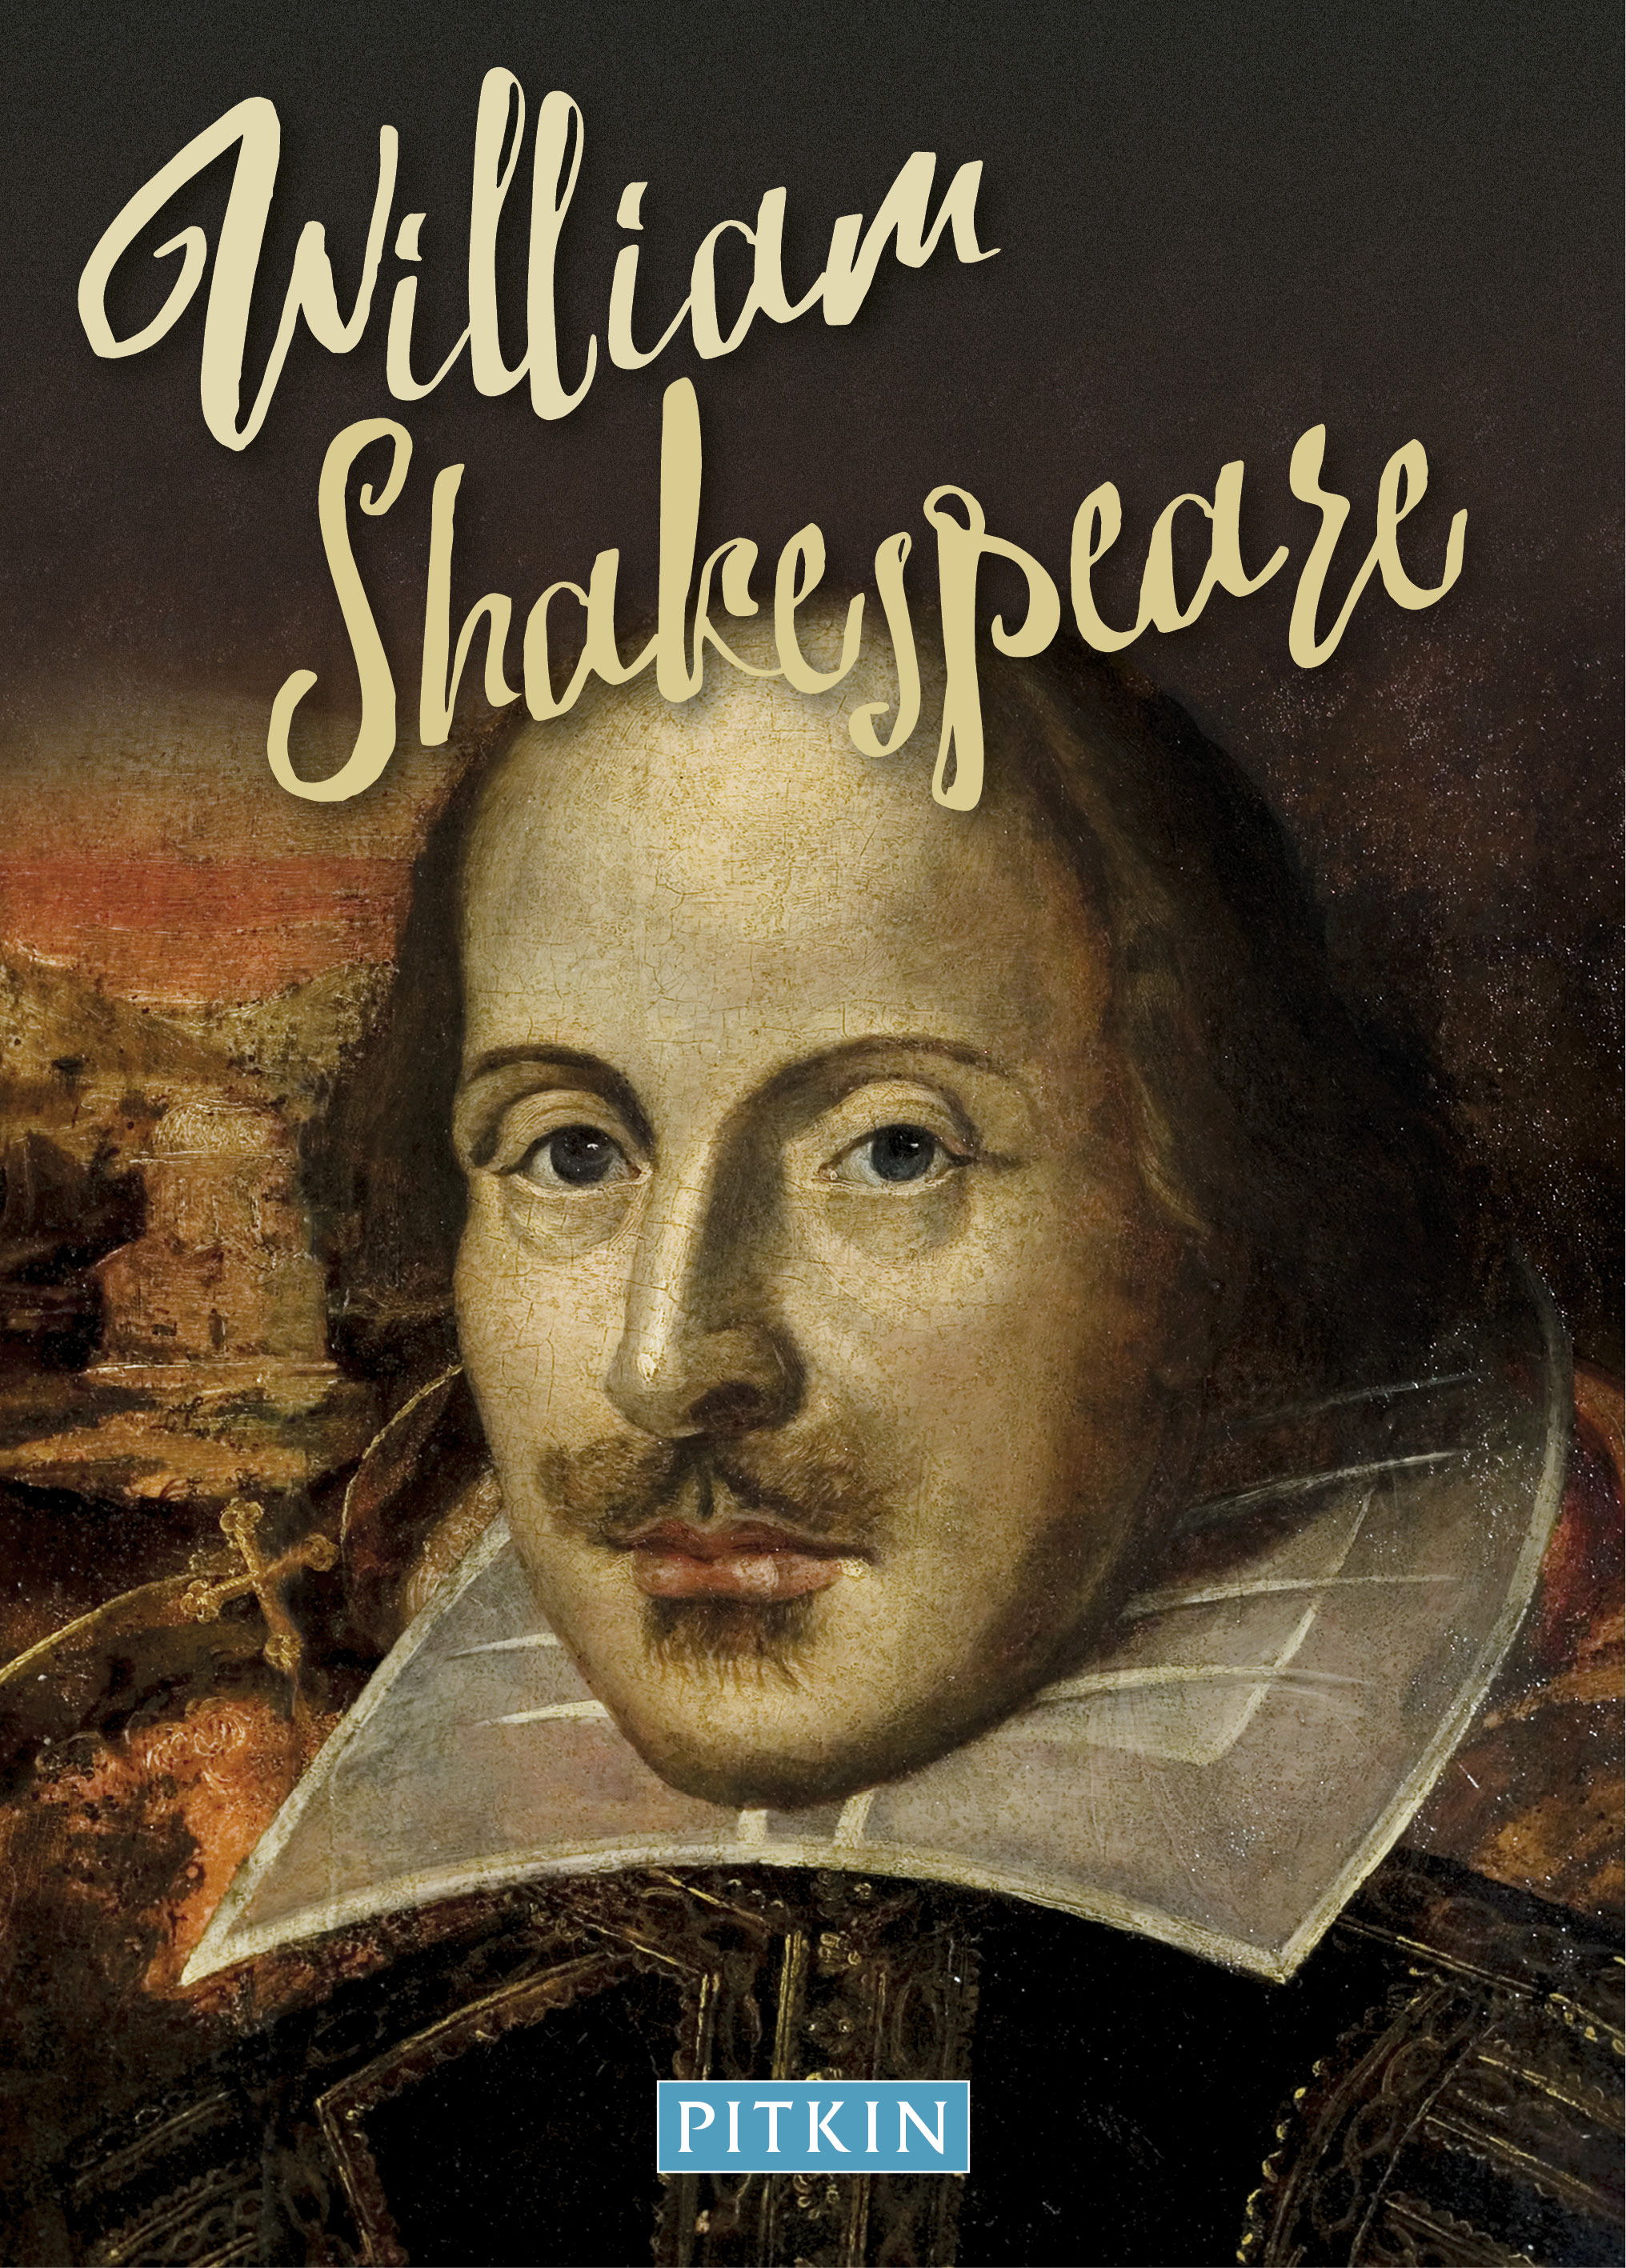 William Shakespeare – English